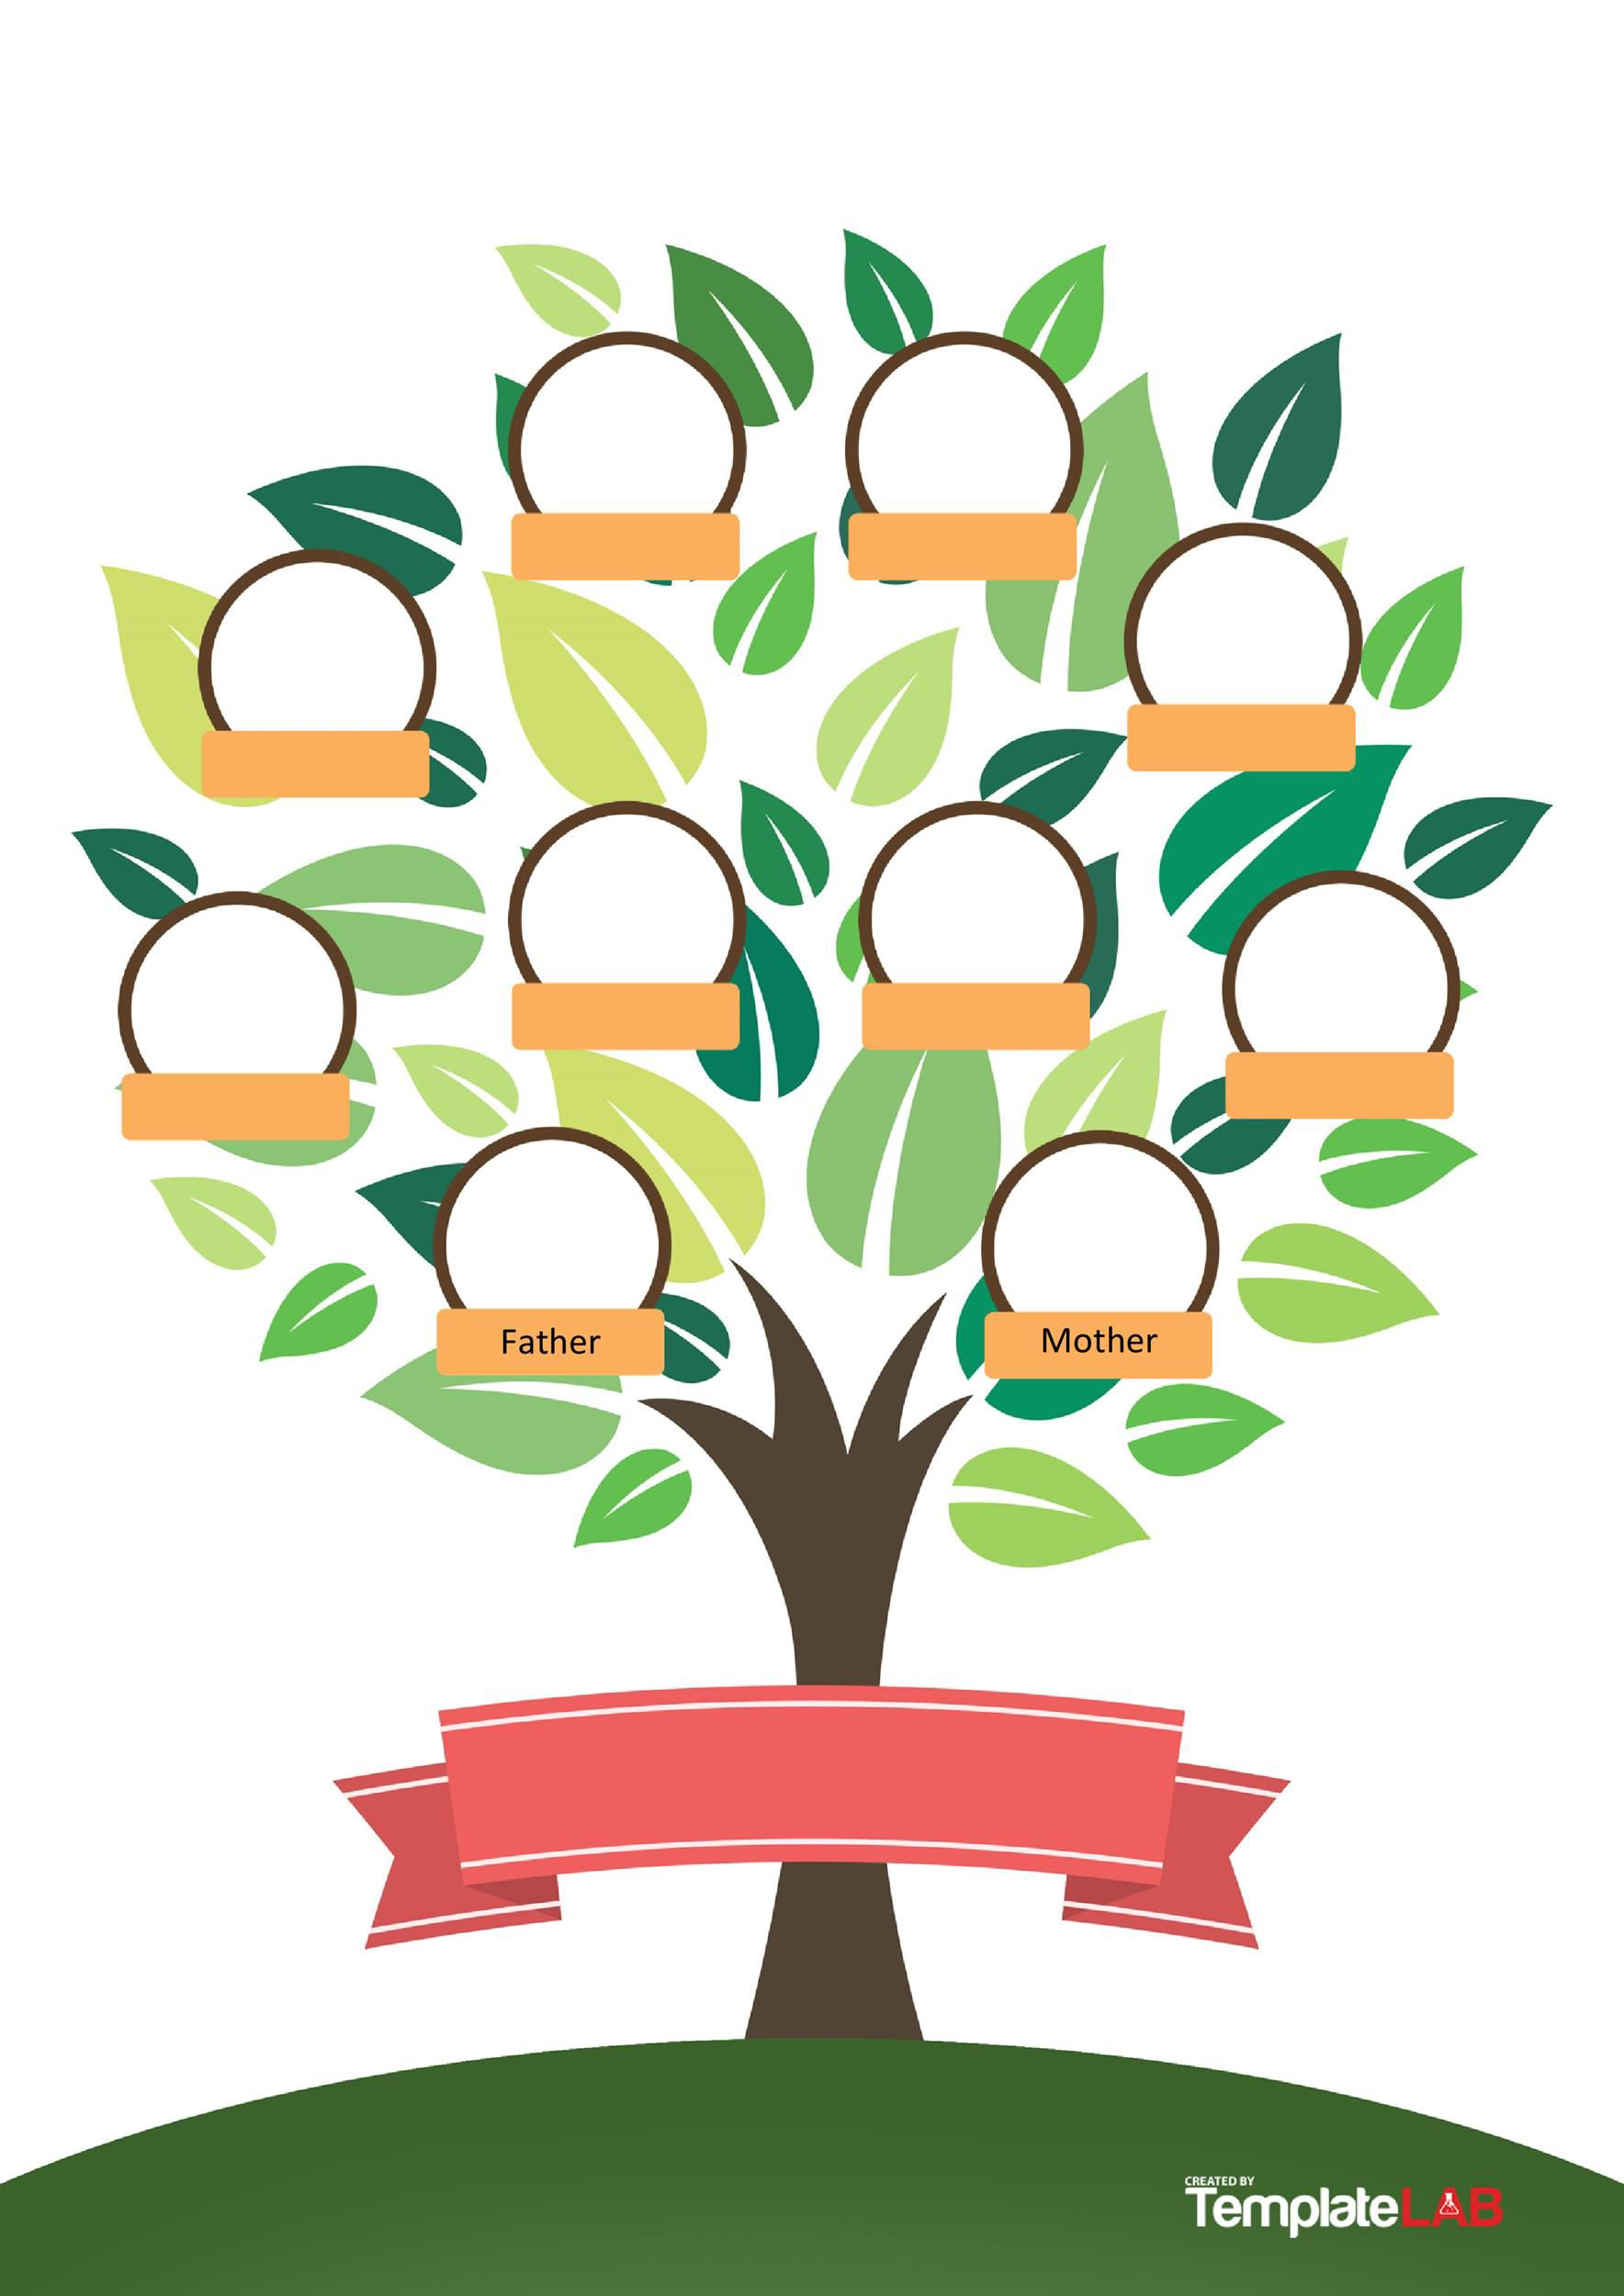 004 Magnificent Family Tree Template Online Highest Clarity  Free Maker ExcelFull